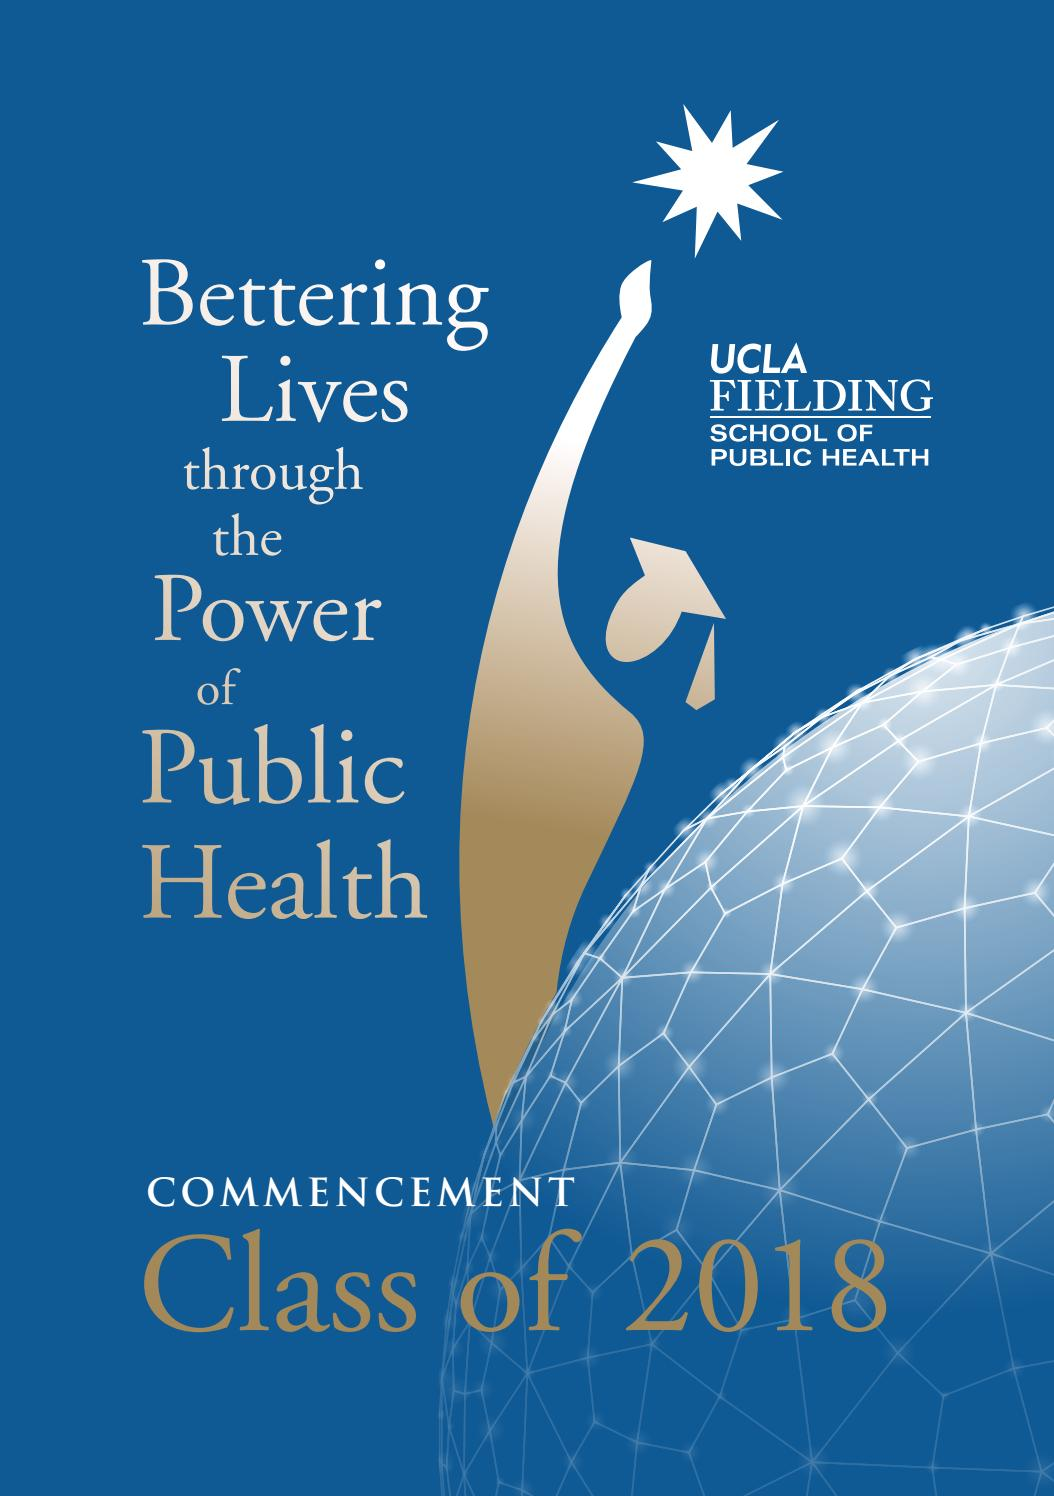 2018 Ucla Fsph Commencement Ceremony By Ucla Fielding School Of